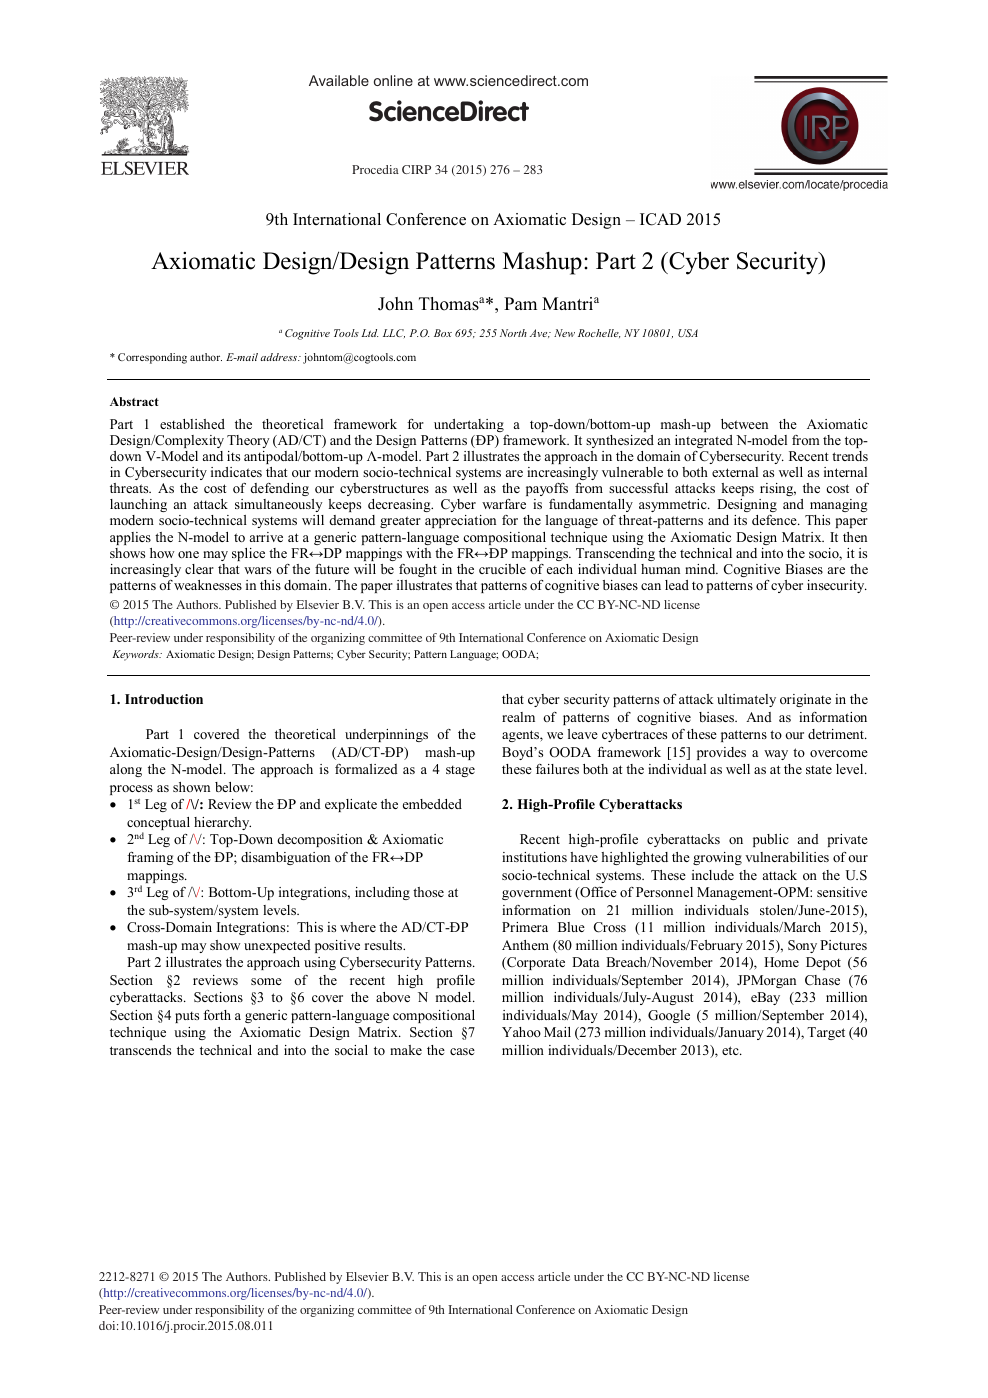 Axiomatic Design/Design Patterns Mashup: Part 2 (Cyber Security